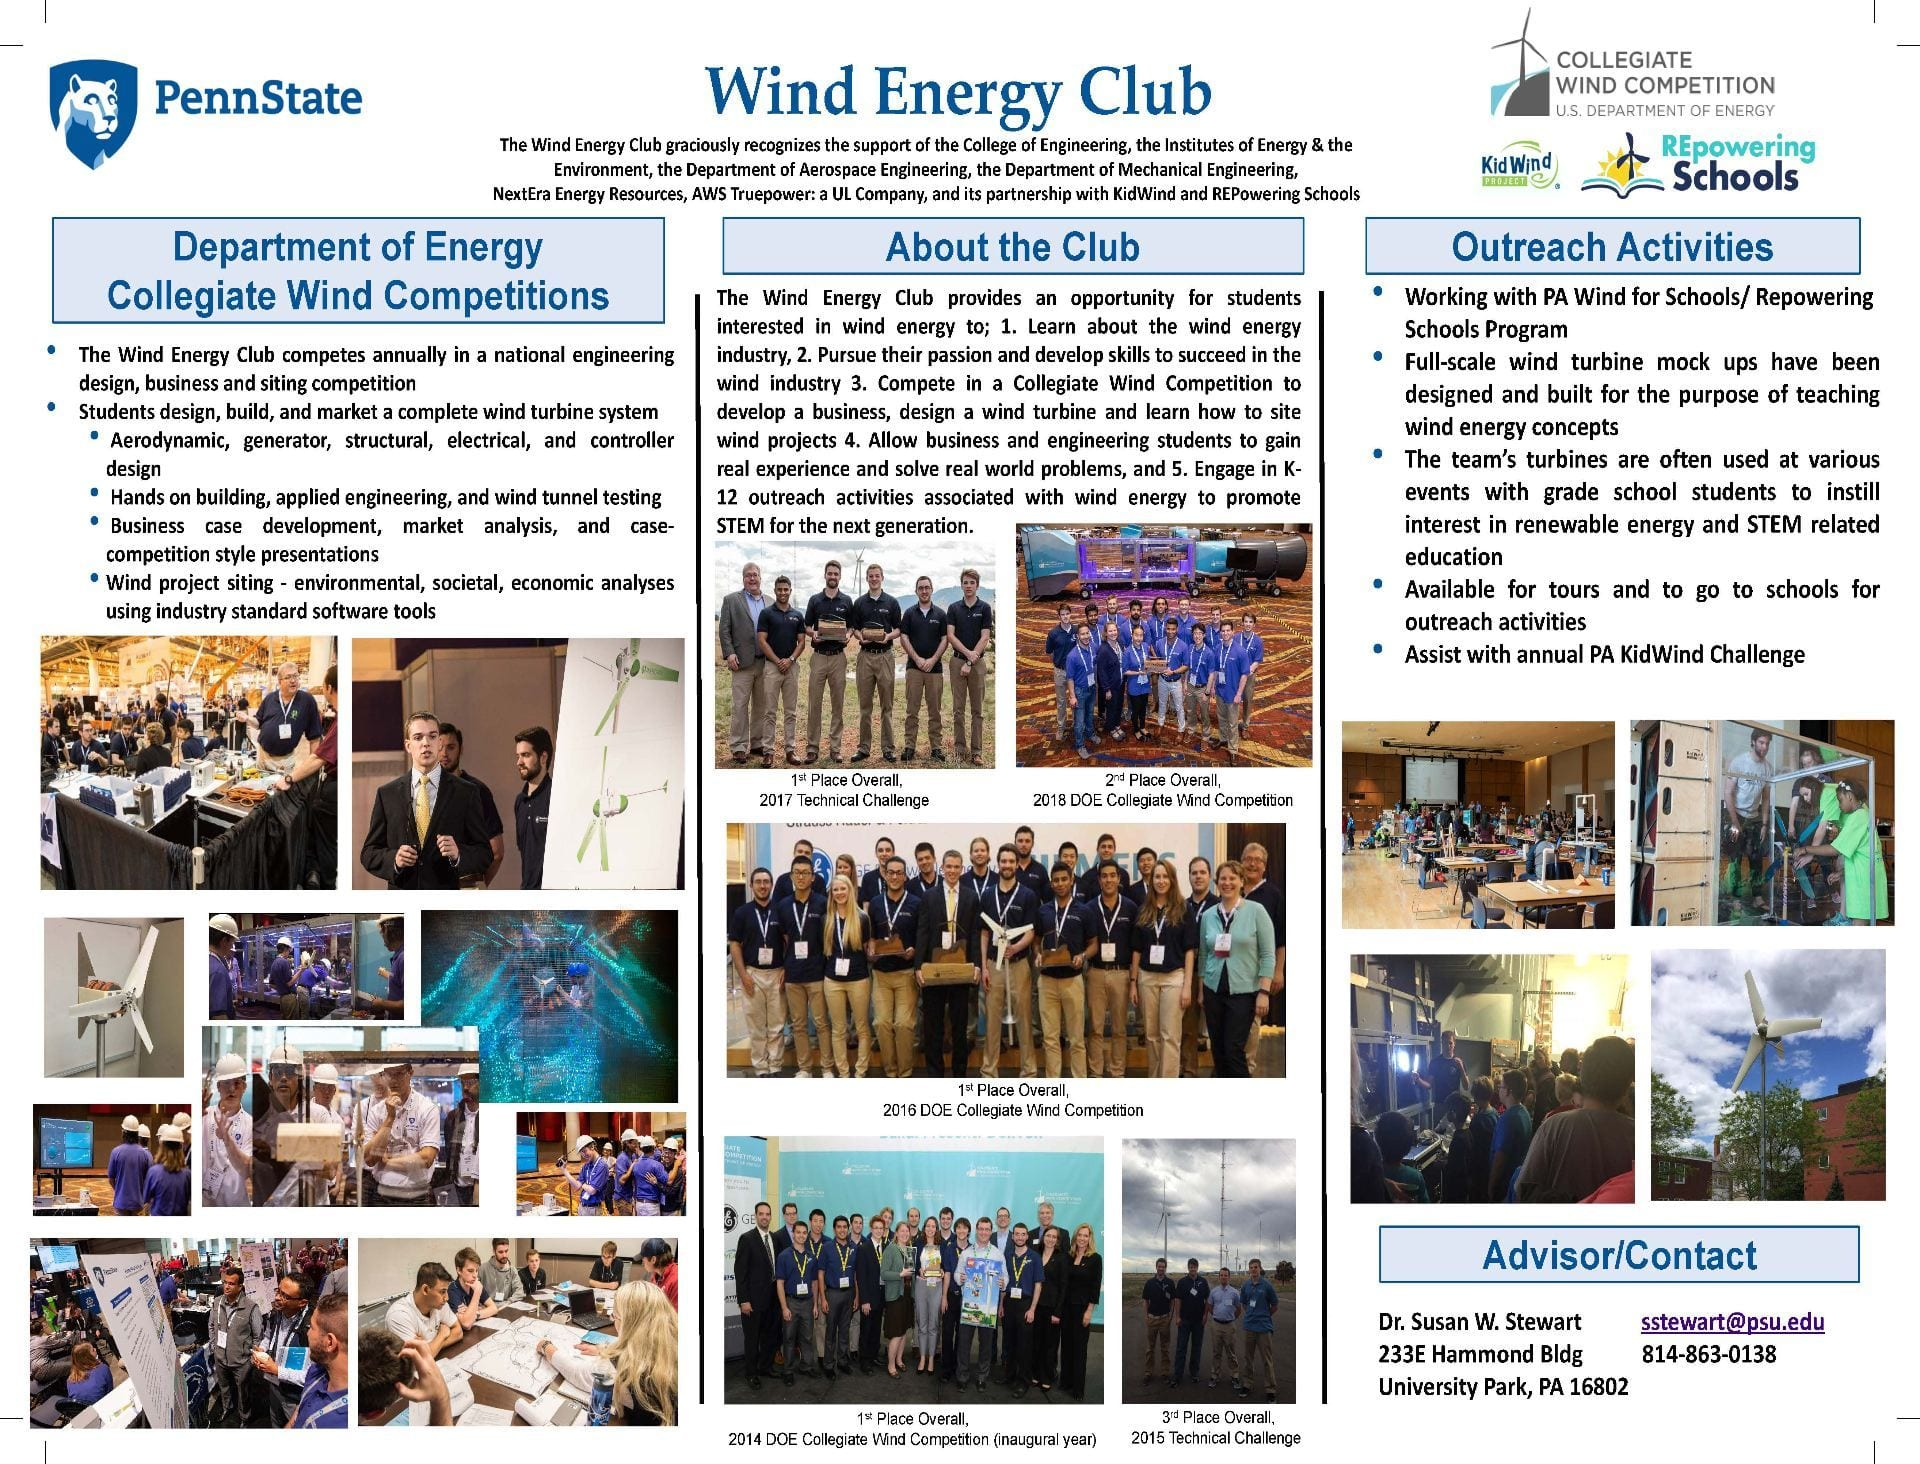 2016 Penn State Collegiate Wind Competition Team